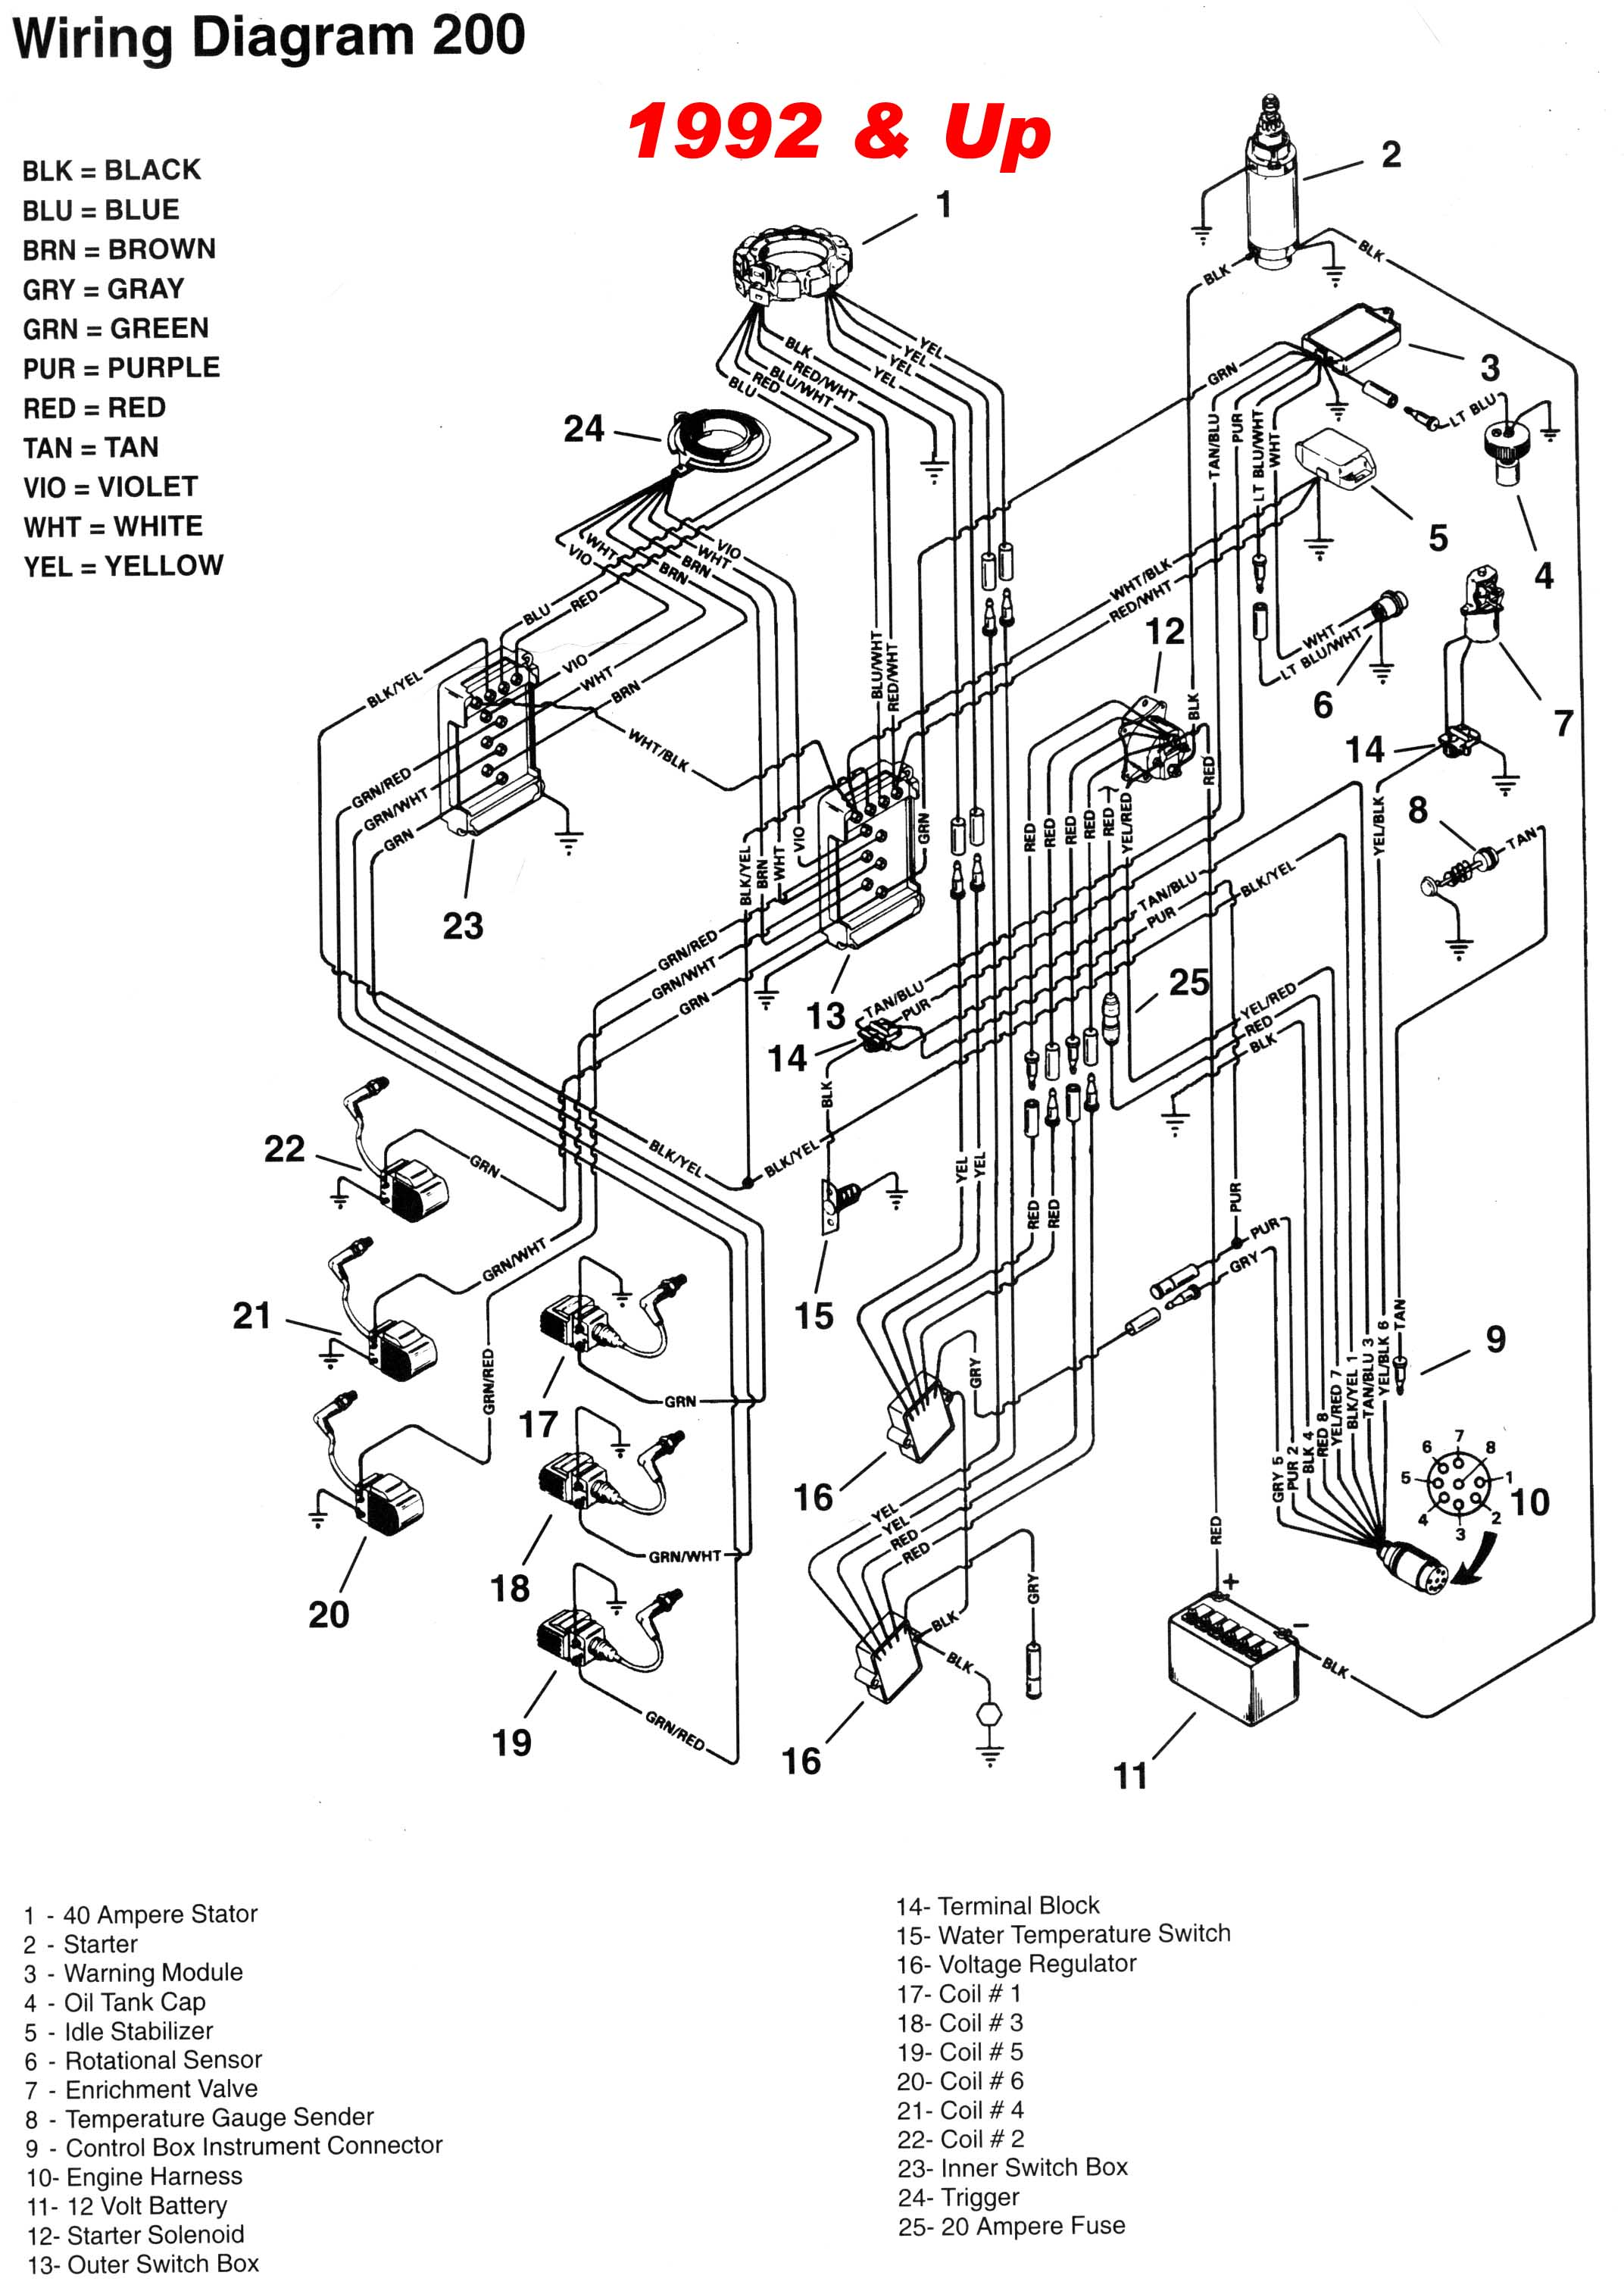 mercury_92up_200_wiring mercury outboard 2 5 and 3 0l v6 and gearcase faq 60 hp mercury outboard wiring diagram at soozxer.org